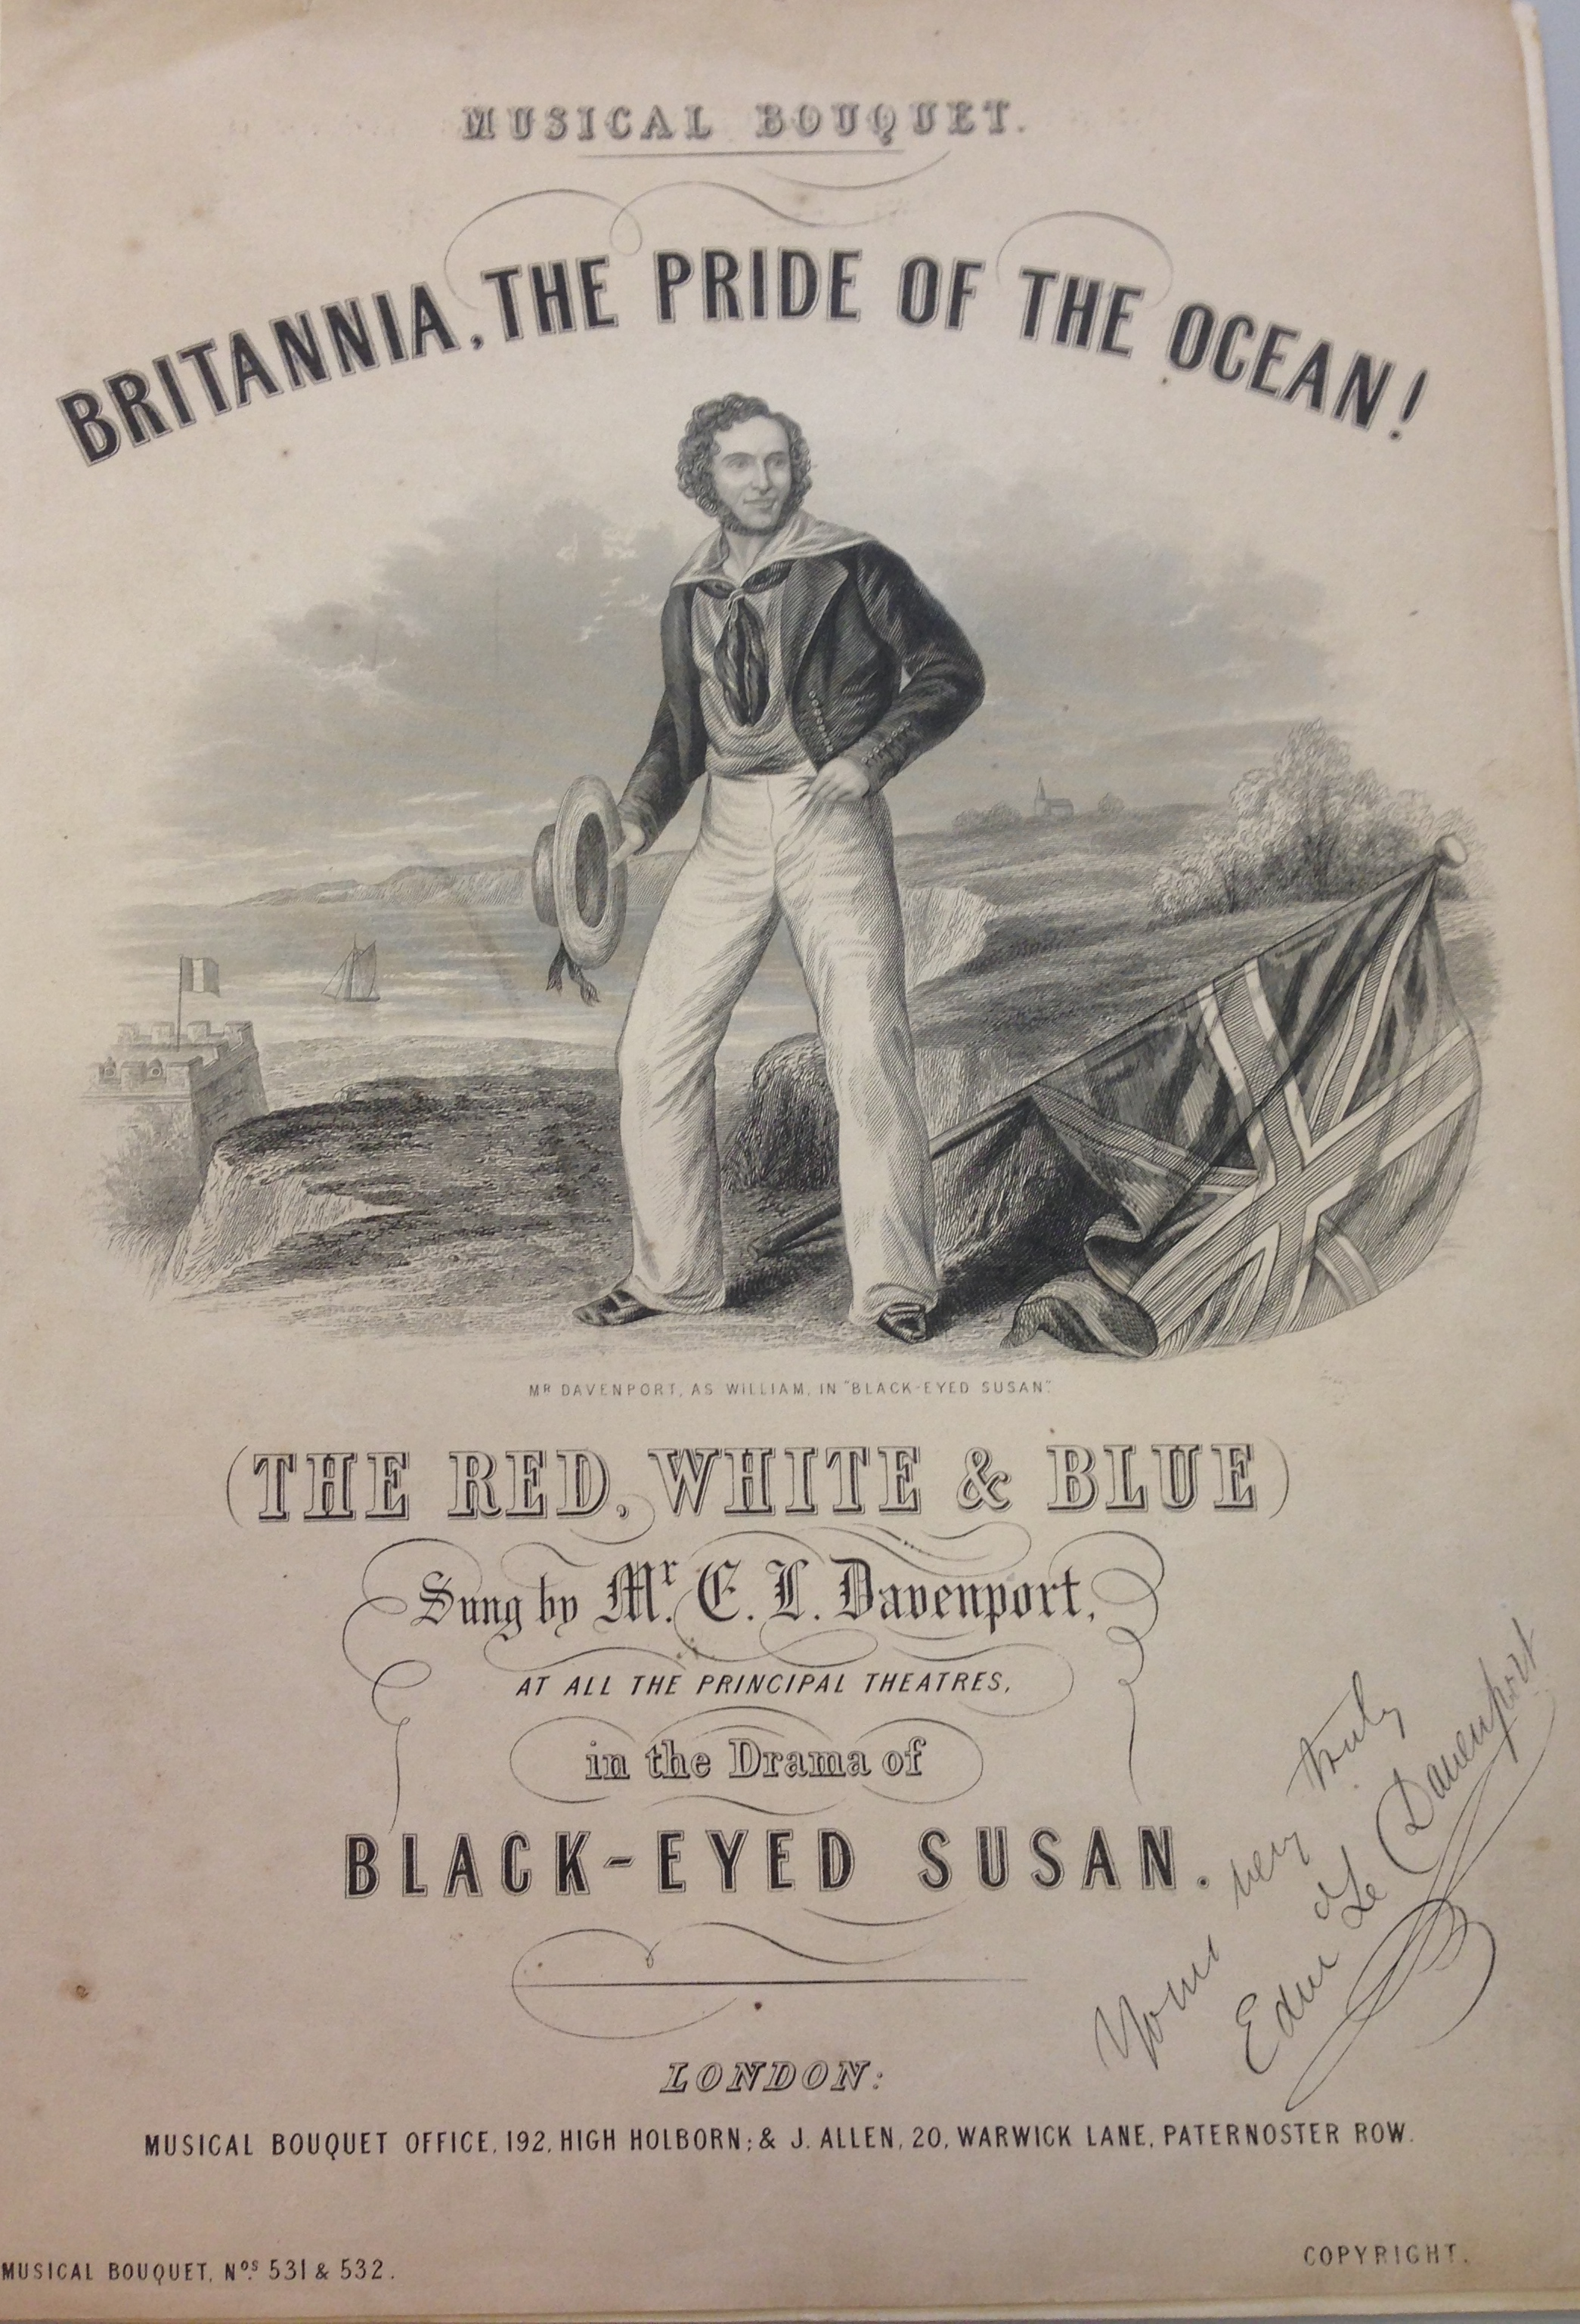 <b>Black Eyed</b>     	</br>An advertisement for Black Eyed Susan autographed by the actor who plays the main role of William, E.L. Davnenport.</br><br/><b>Source: </b><i>Used with permission from the University of Bristol Theatre Collection.</i>